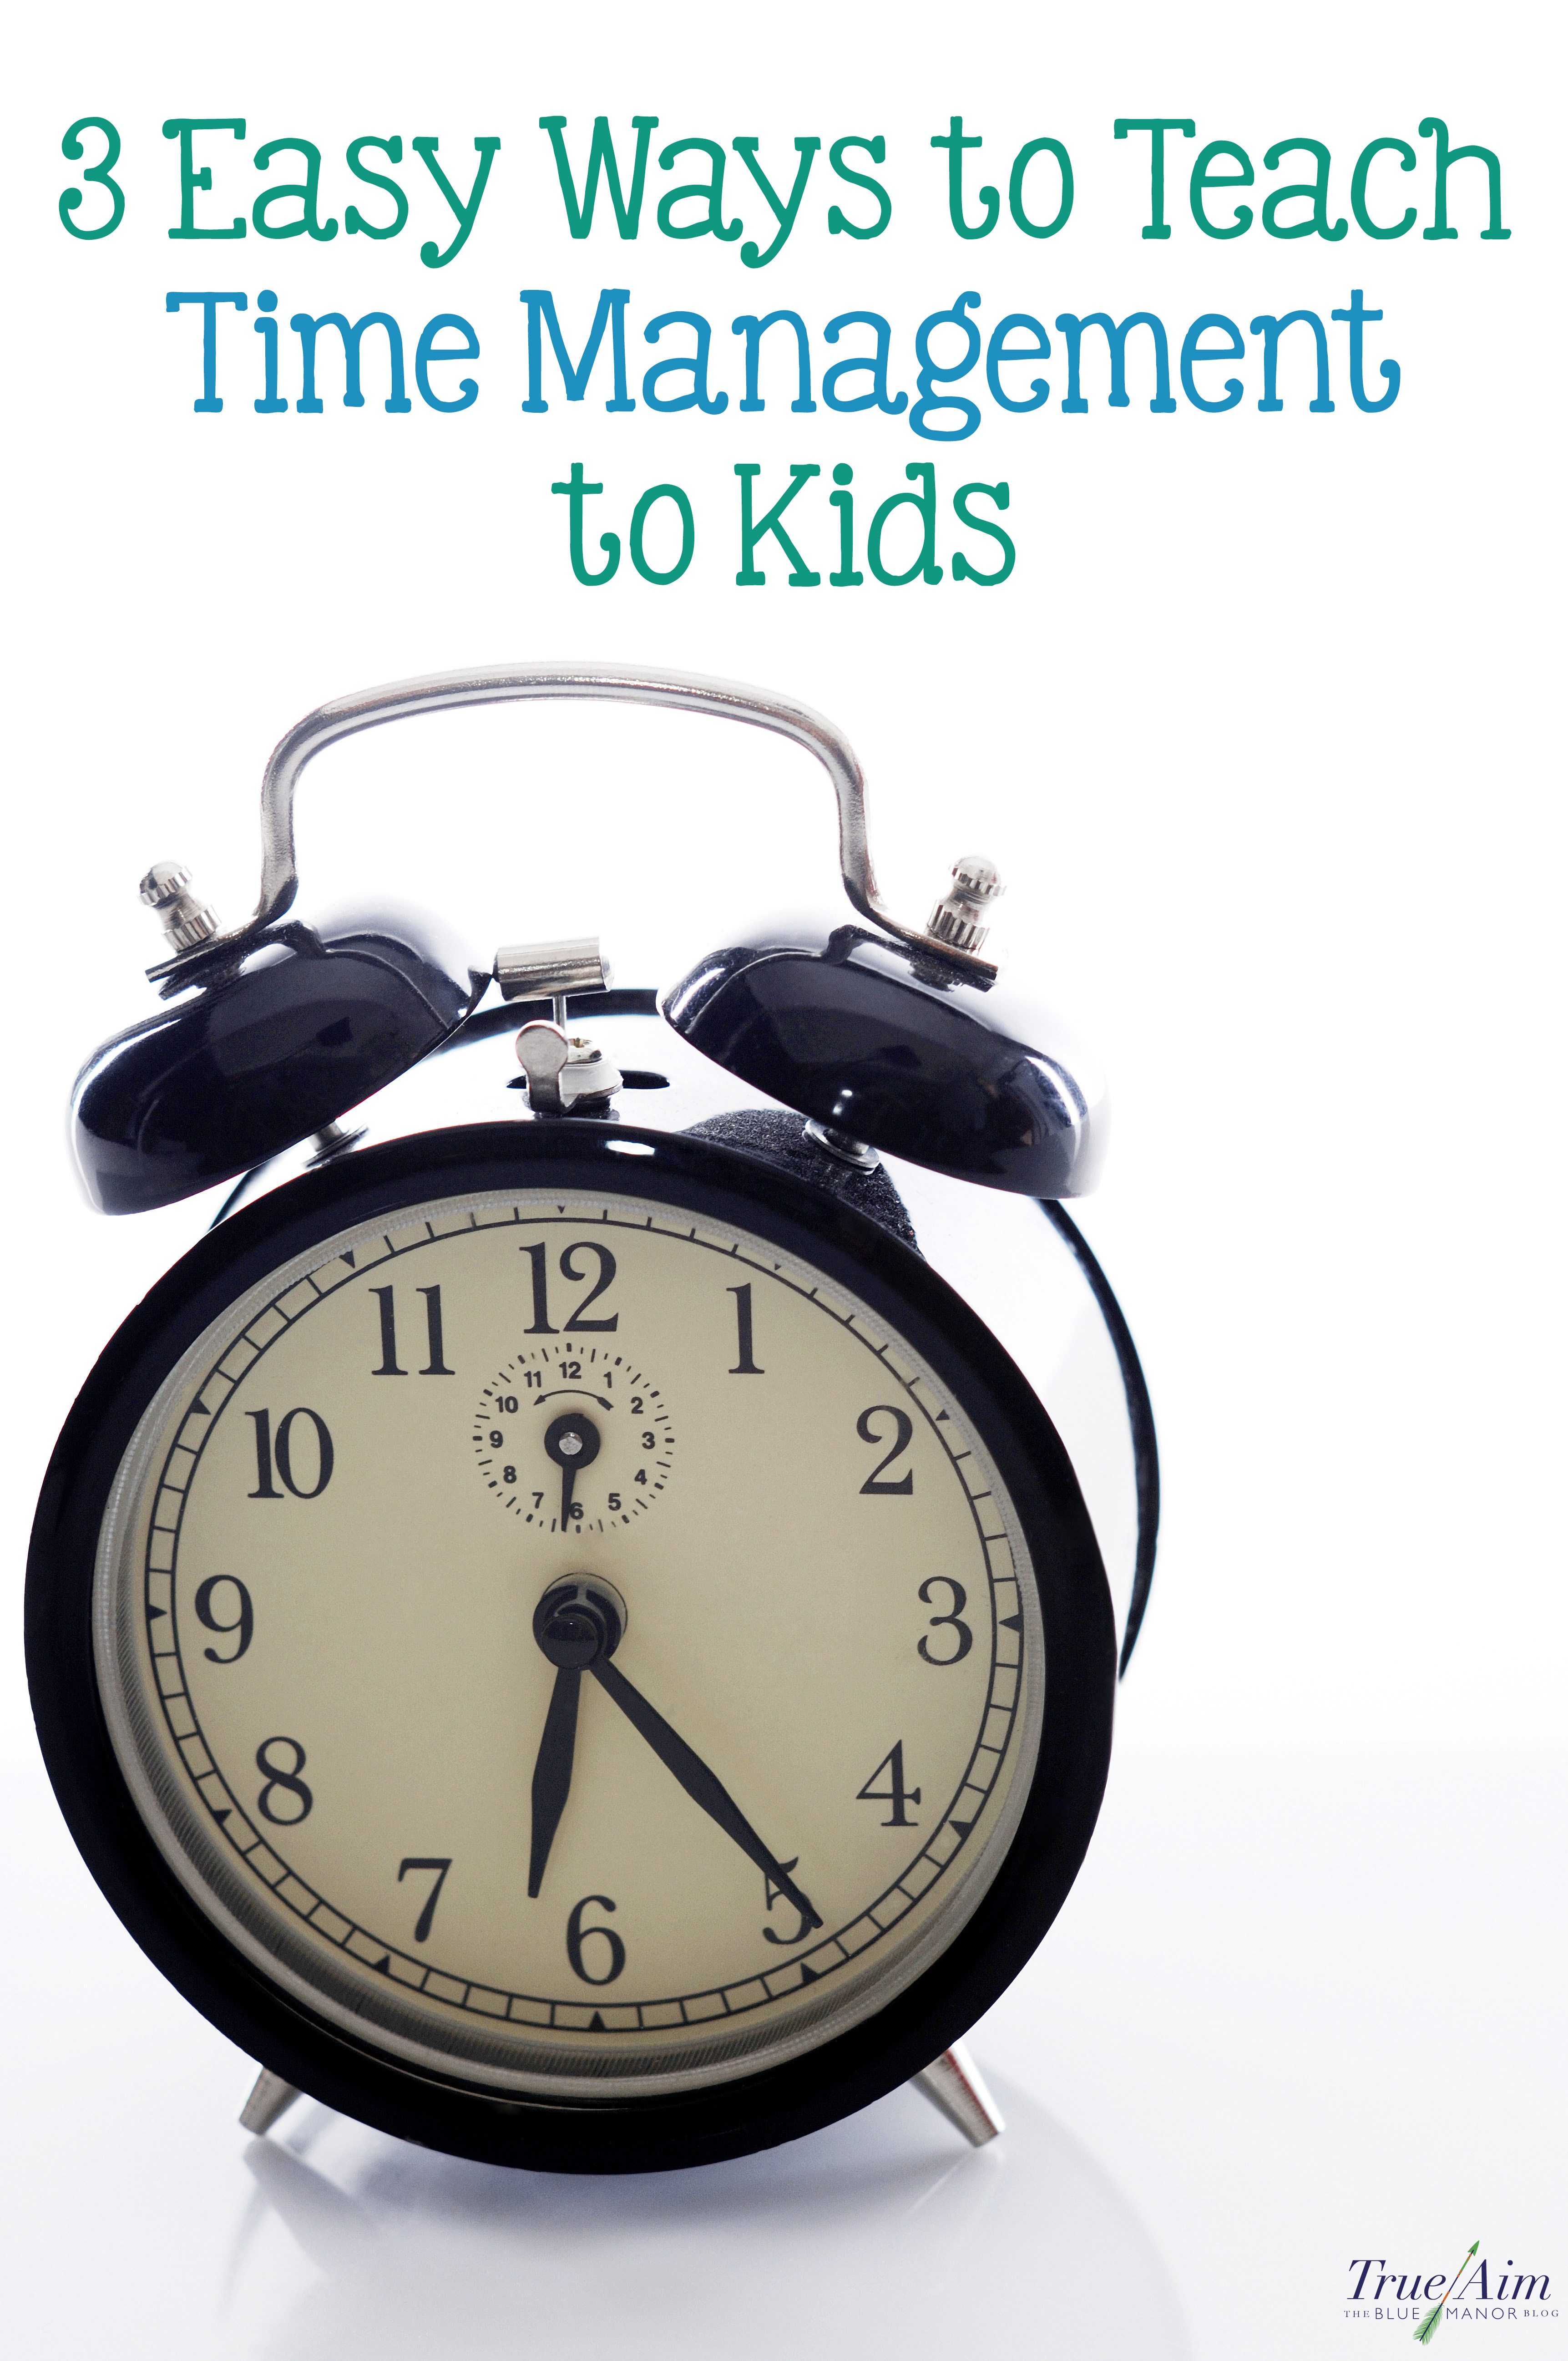 In a saturated digital world, here are three easy, simple ways we can teach time management to kids.